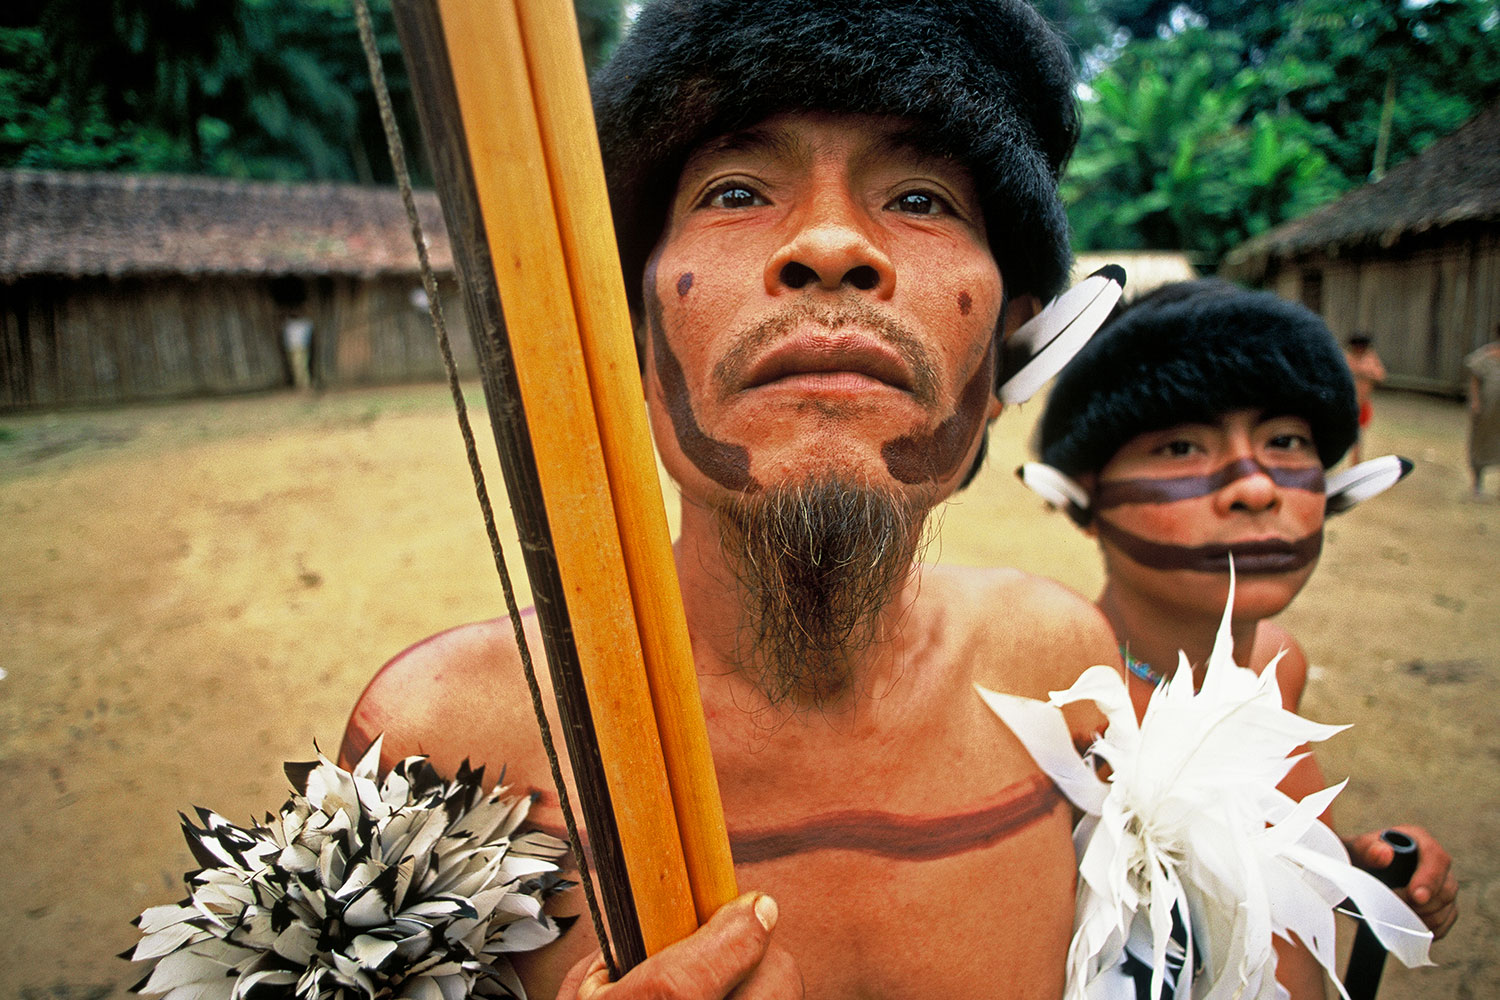 Yanomami father and son in the Orinoco River Valley, Venezuela, 2001.